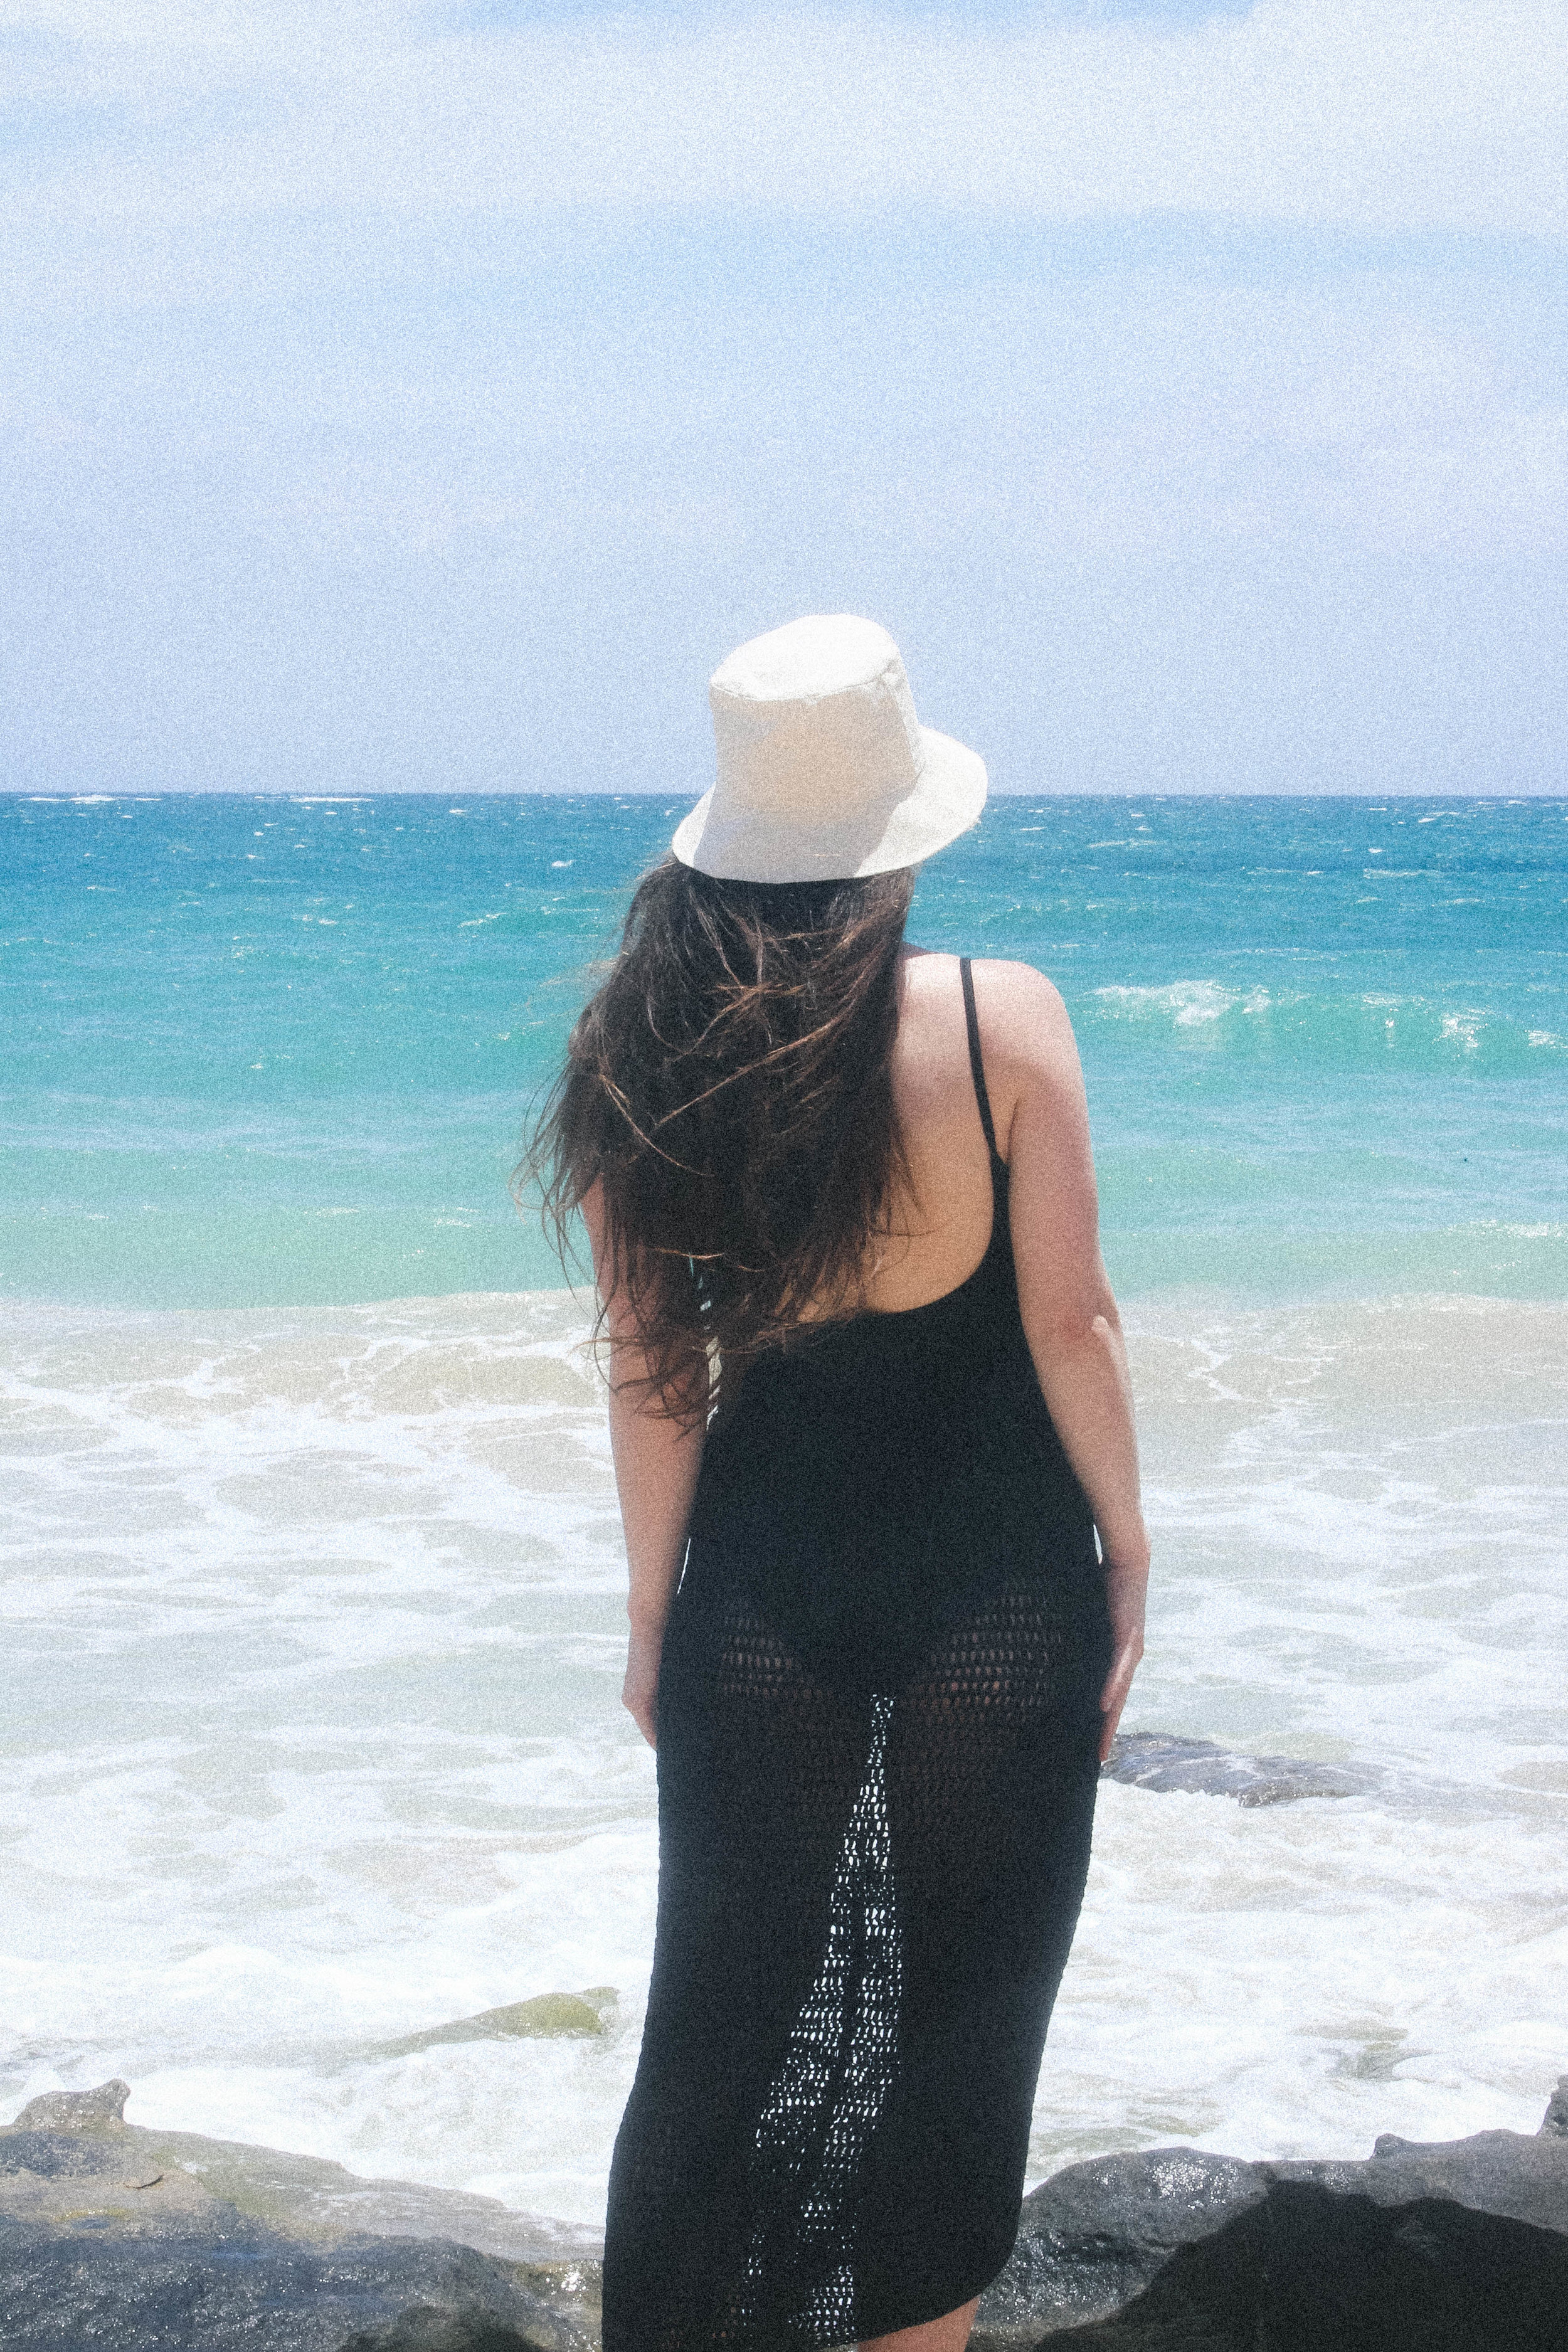 SAN JUAN, PUERTO RICO TRAVEL DIARY | TAYLORKRISTIINA.COM | WEARING MATTEAU SCOOP MAILLOT, JESSE KAMM FLY HAT, AND SIR THE LABEL ELLE KNIT SKIRT